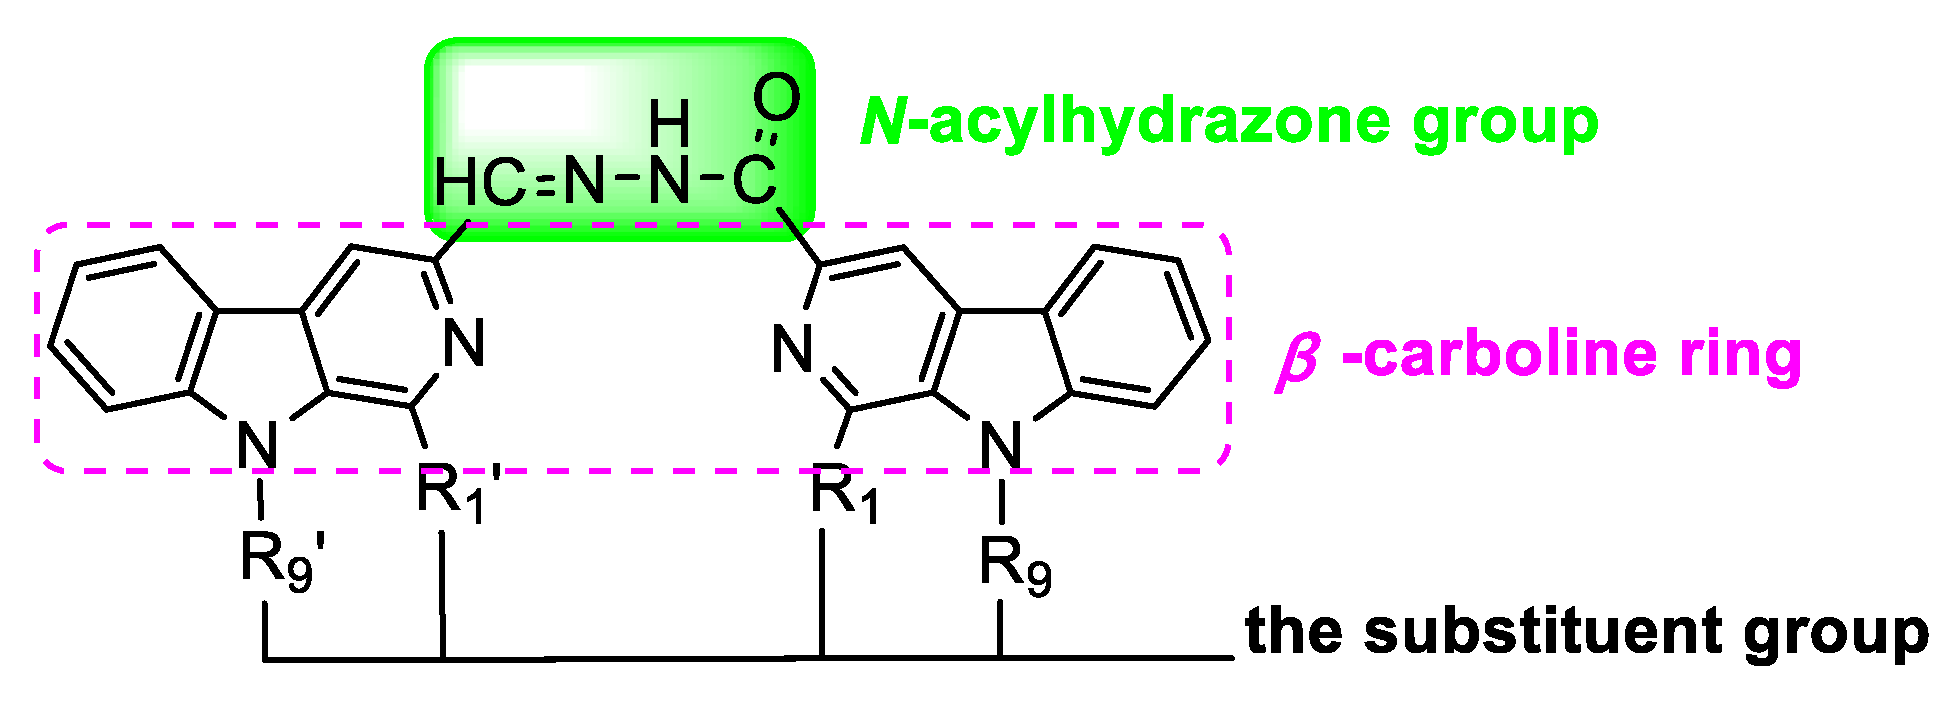 Molecules | Free Full-Text | Design. Synthesis. and Biological Evaluation of Novel N-Acylhydrazone Bond Linked Heterobivalent β-Carbolines as ...